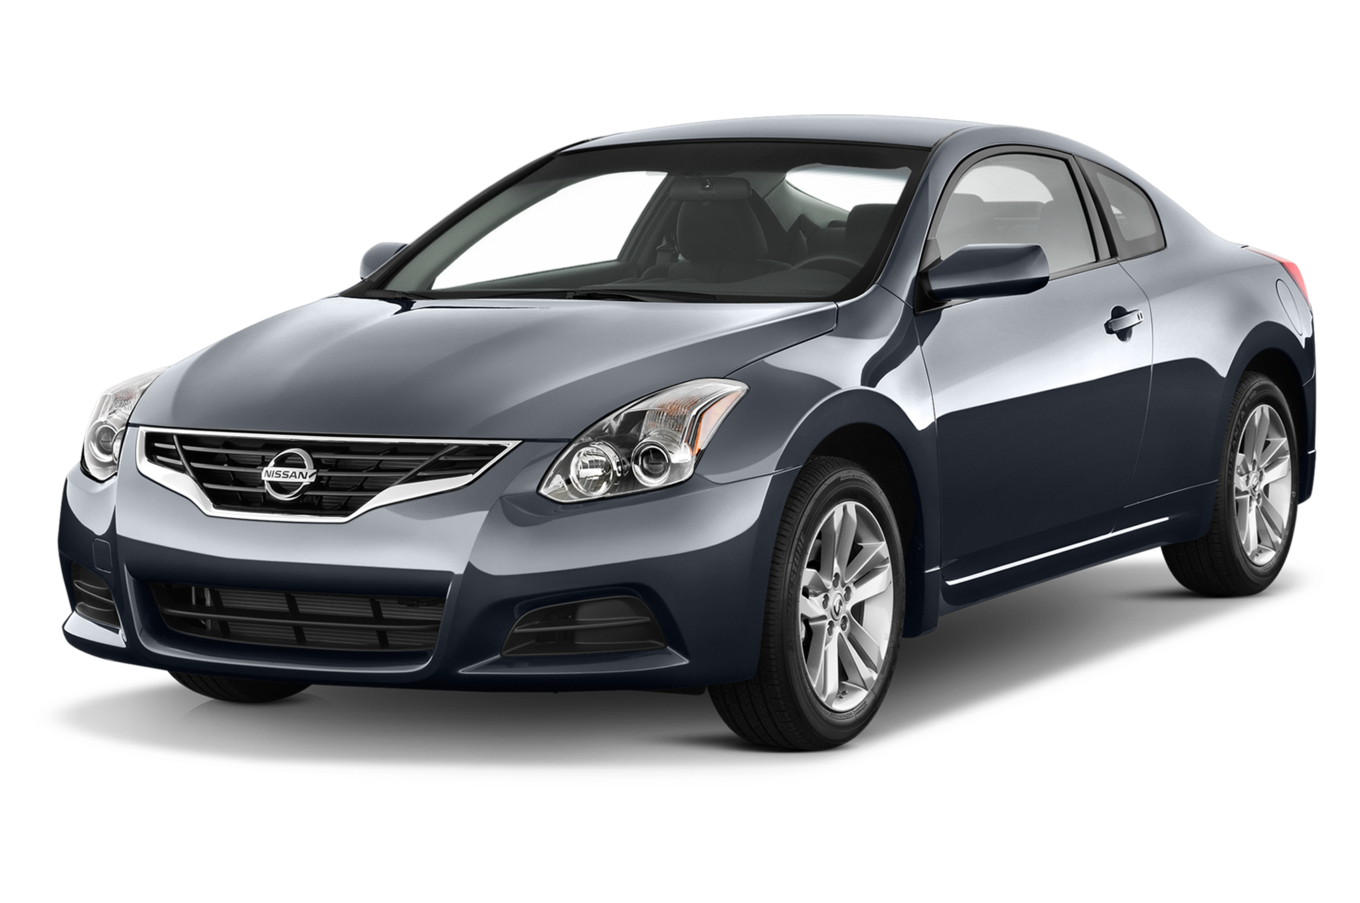 Nissan coupe photo - 6